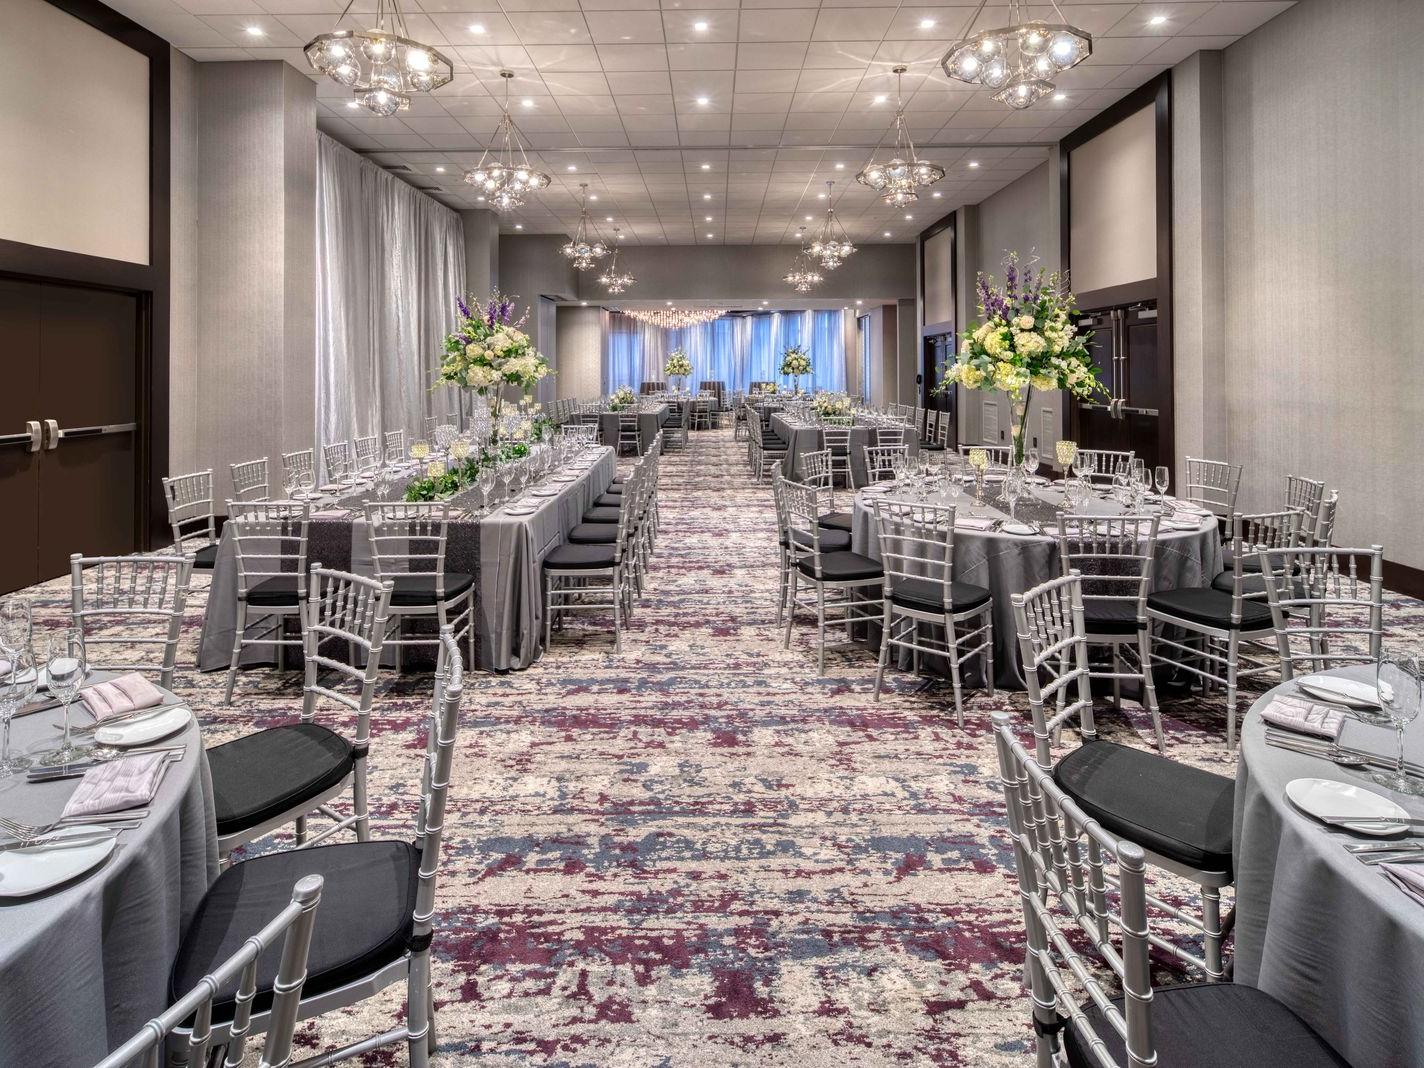 banquet room with grey linen top tables and chairs